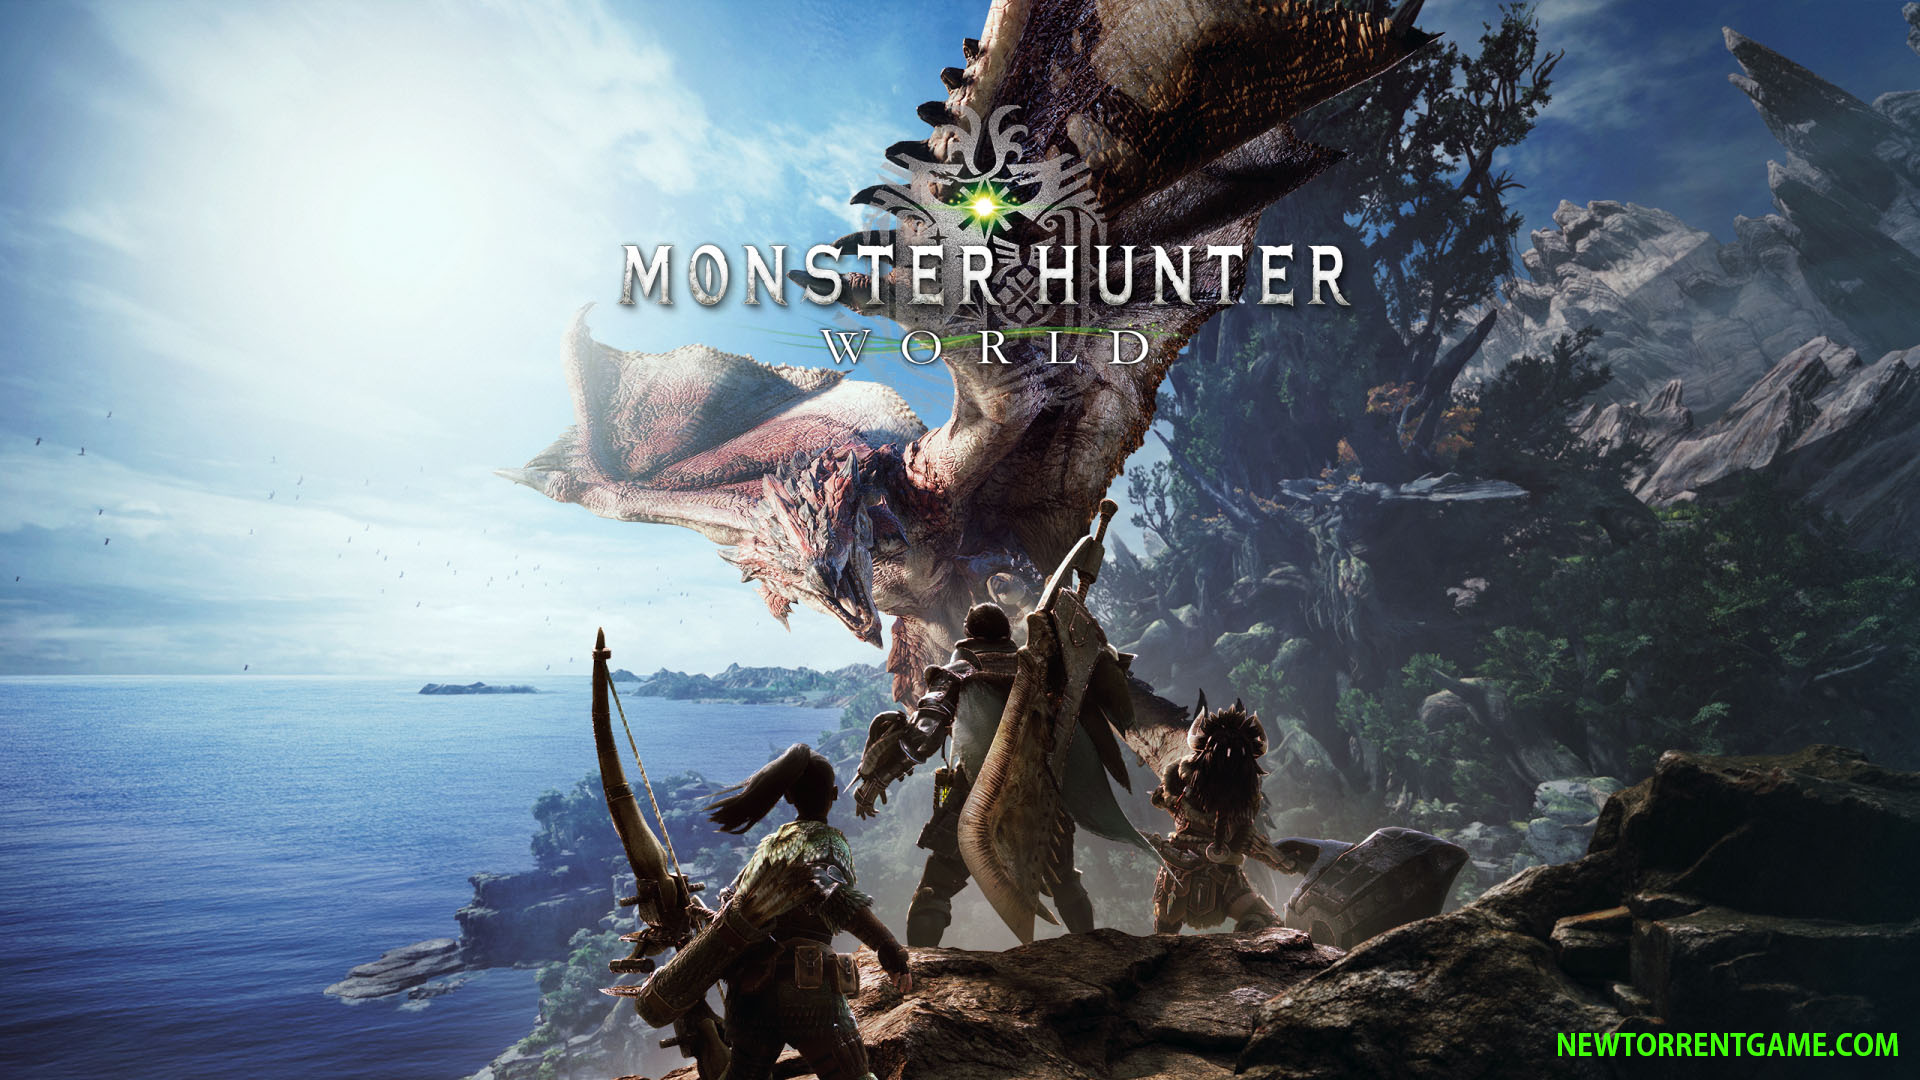 MONSTER HUNTER WORLD 3DM CRACK DOWNLOAD TORRENT